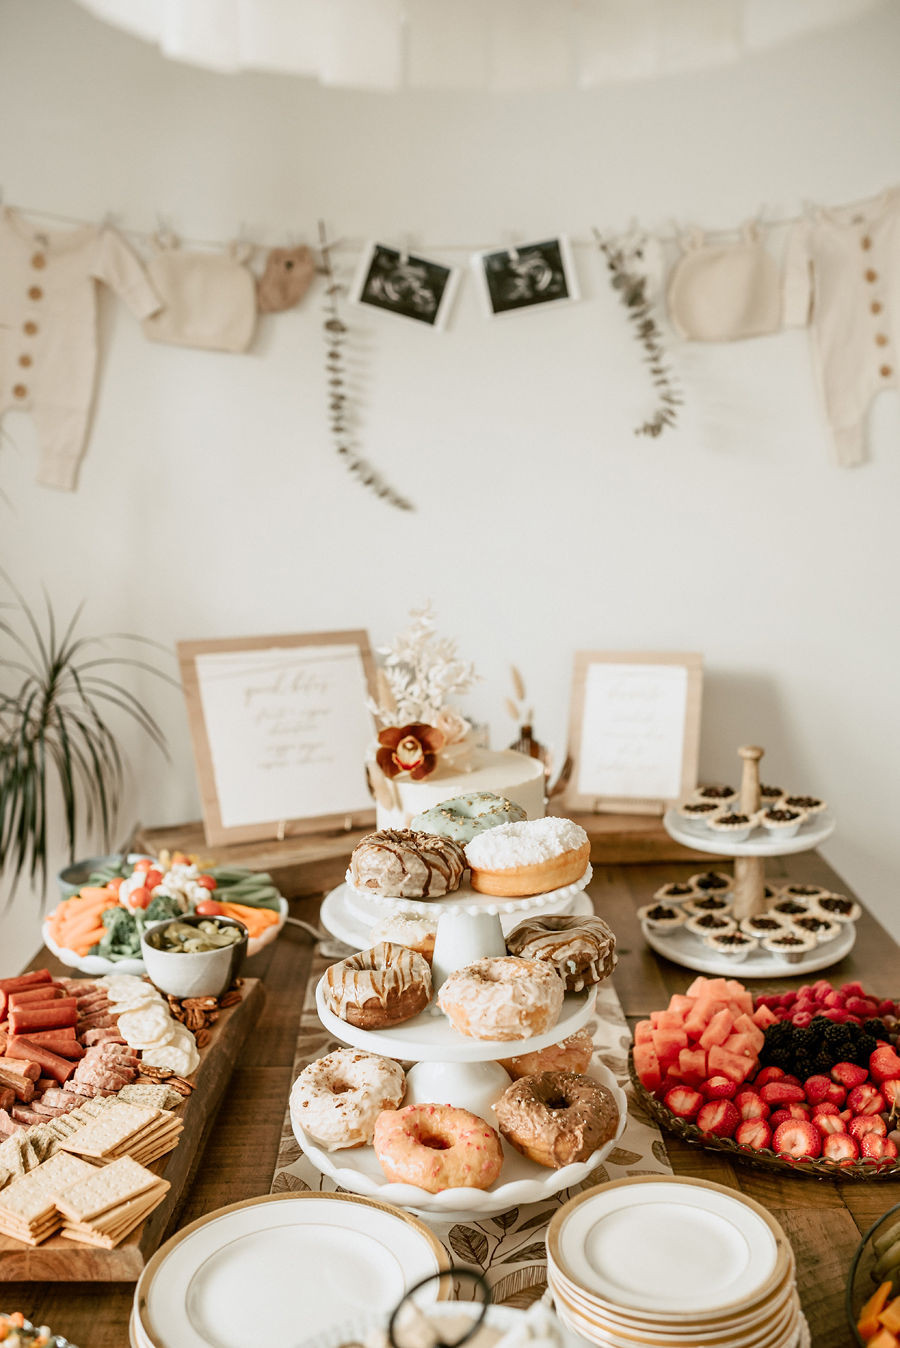 A beautifully styled table of food is displayed at a boho floral vintage baby shower with lace and floral details.